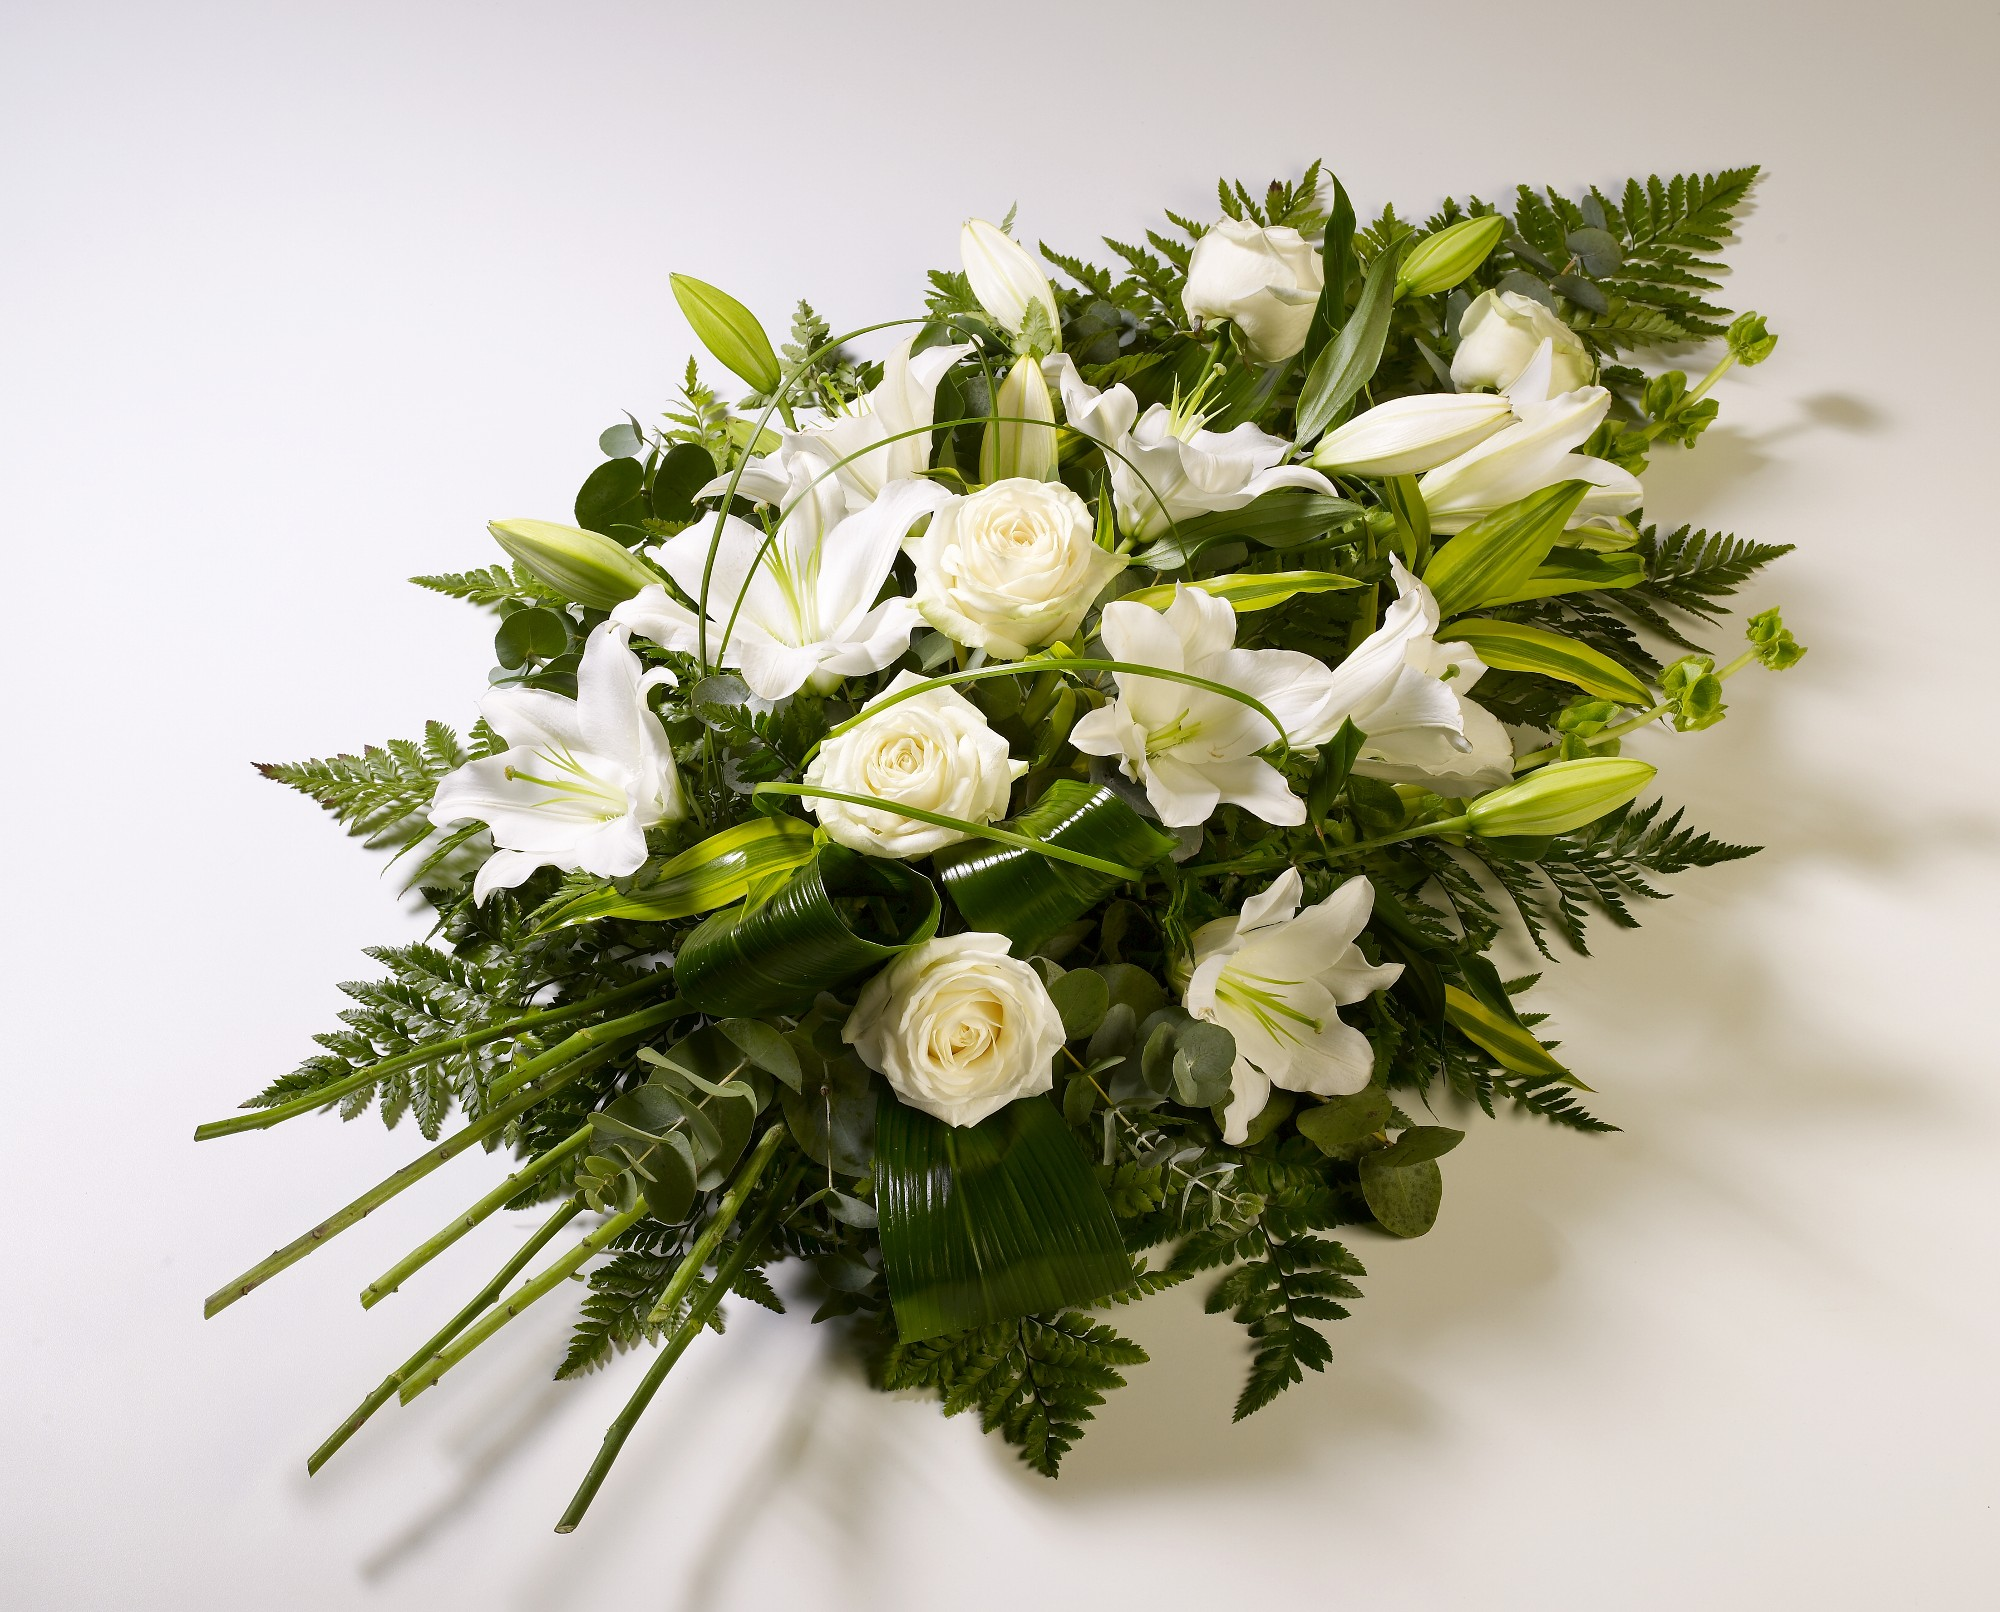 Express Condolences To Precious Ones With Funeral Flowers Set Of